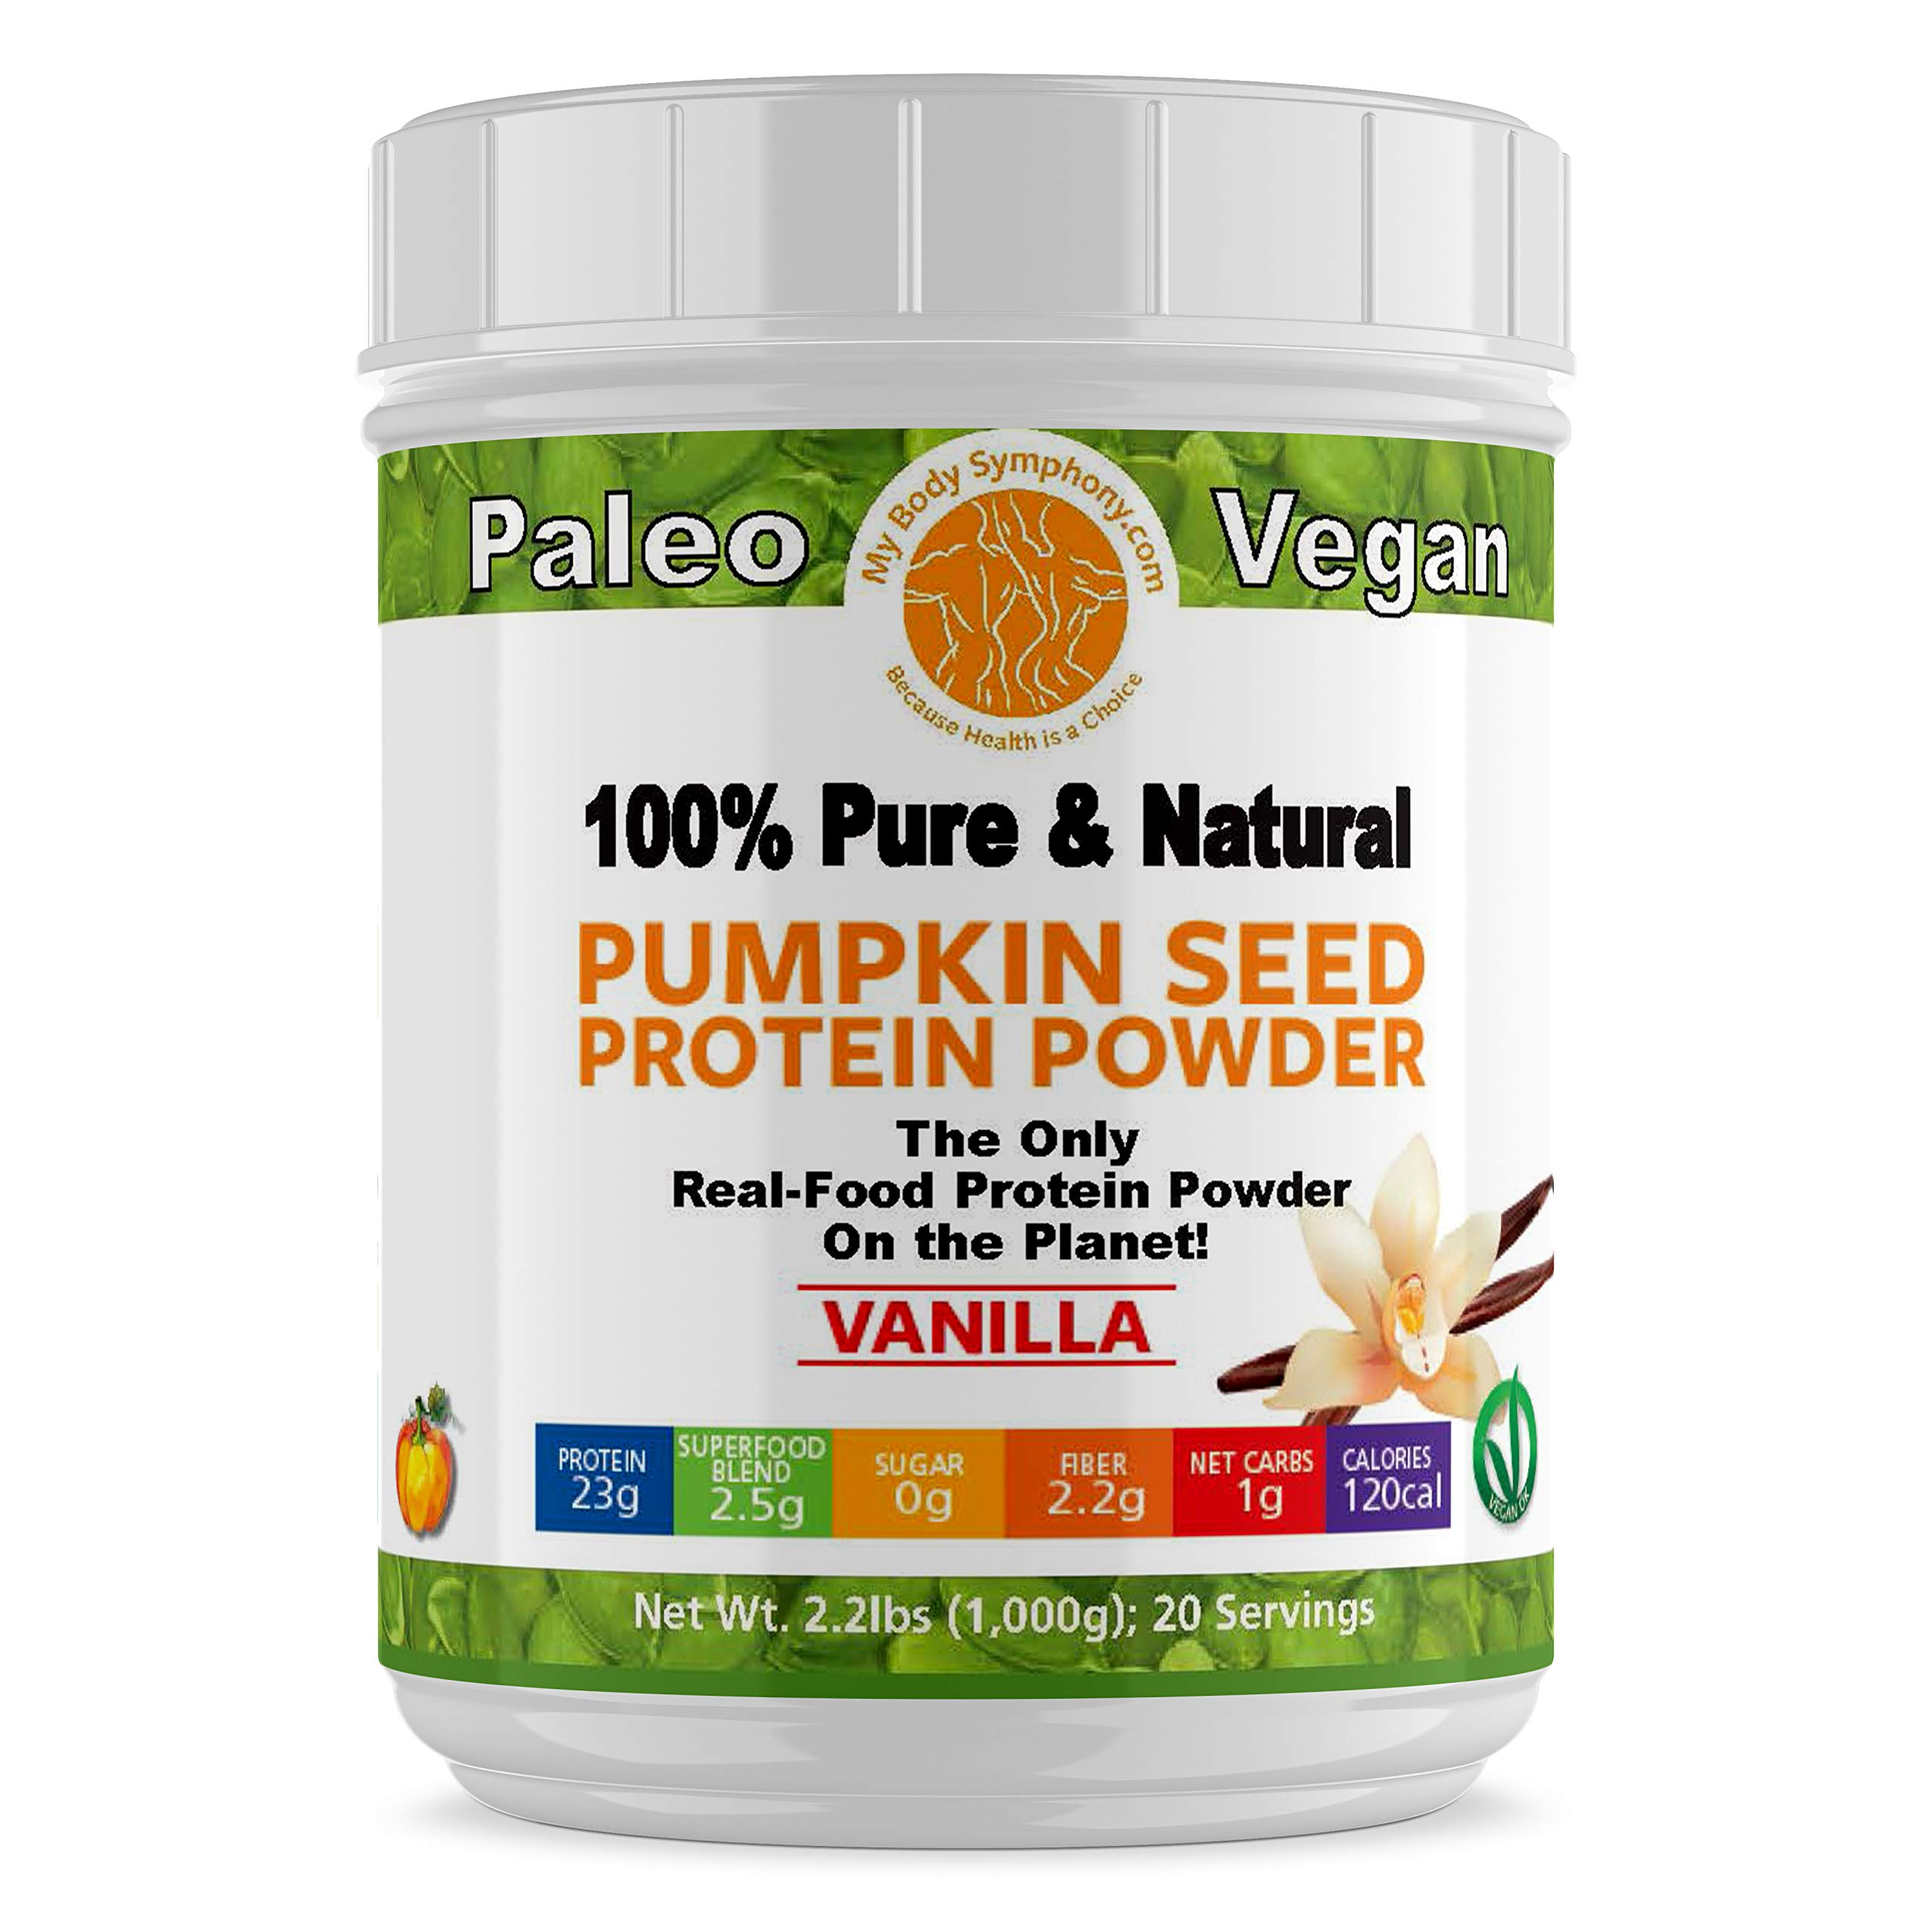 Pumpkin Seed Protein Powder | Vanilla Flaor | 100% Pure and Natural, Raw Superfood, Cold Pressed, Non-GMO & Gluten Free | Vegan, Paleo and Keto Shakes Friendly - 2.20 lbs 20 Servings by MyBodySymphony.com